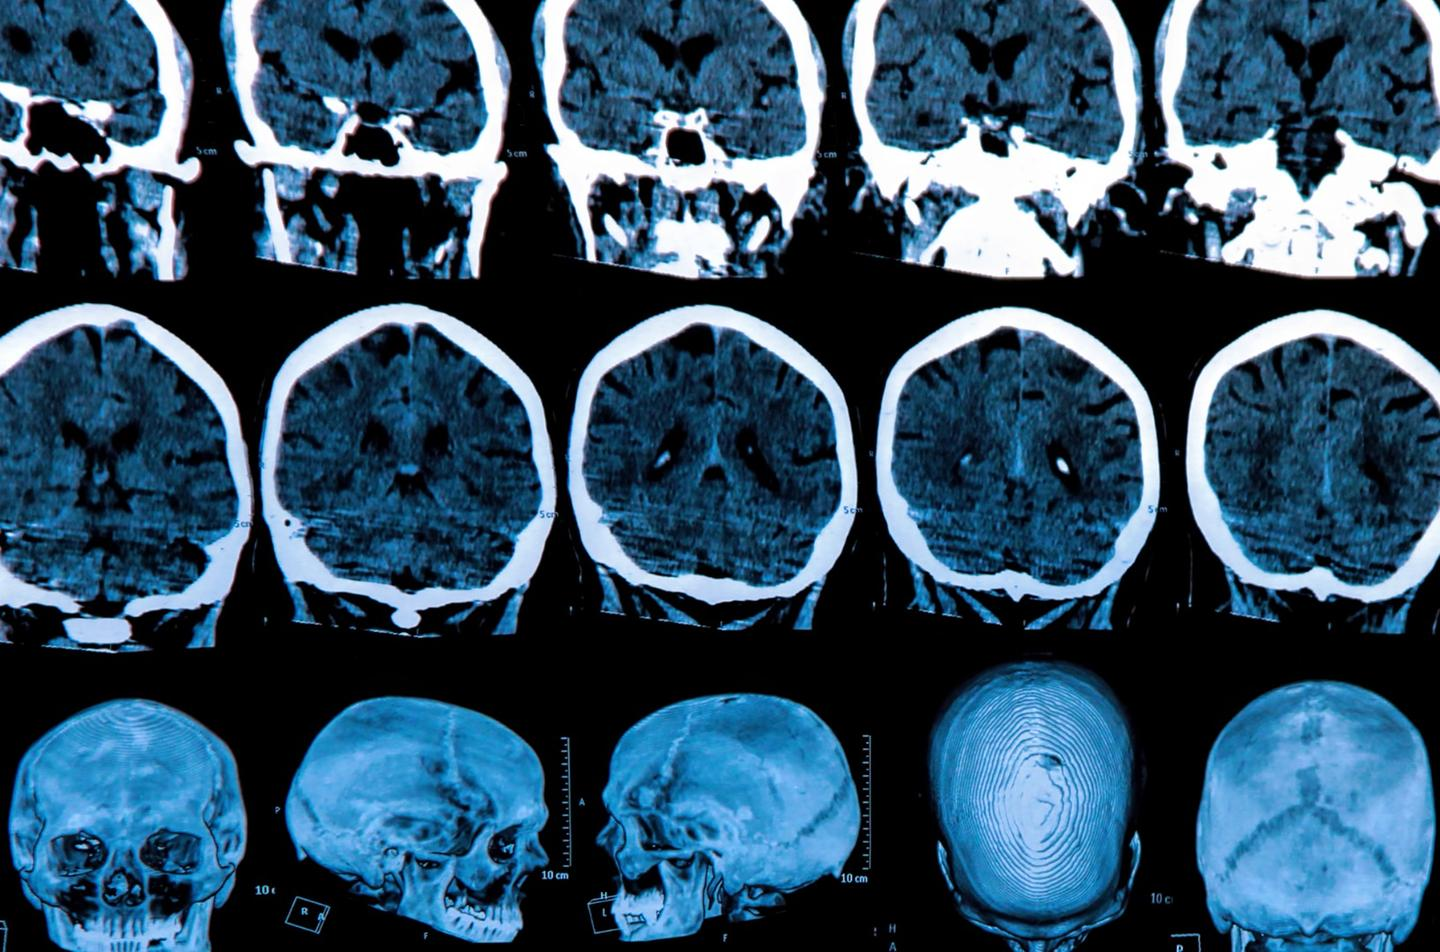 The same molecule that causes Huntington's disease has been found to have remarkable cancer-killing properties